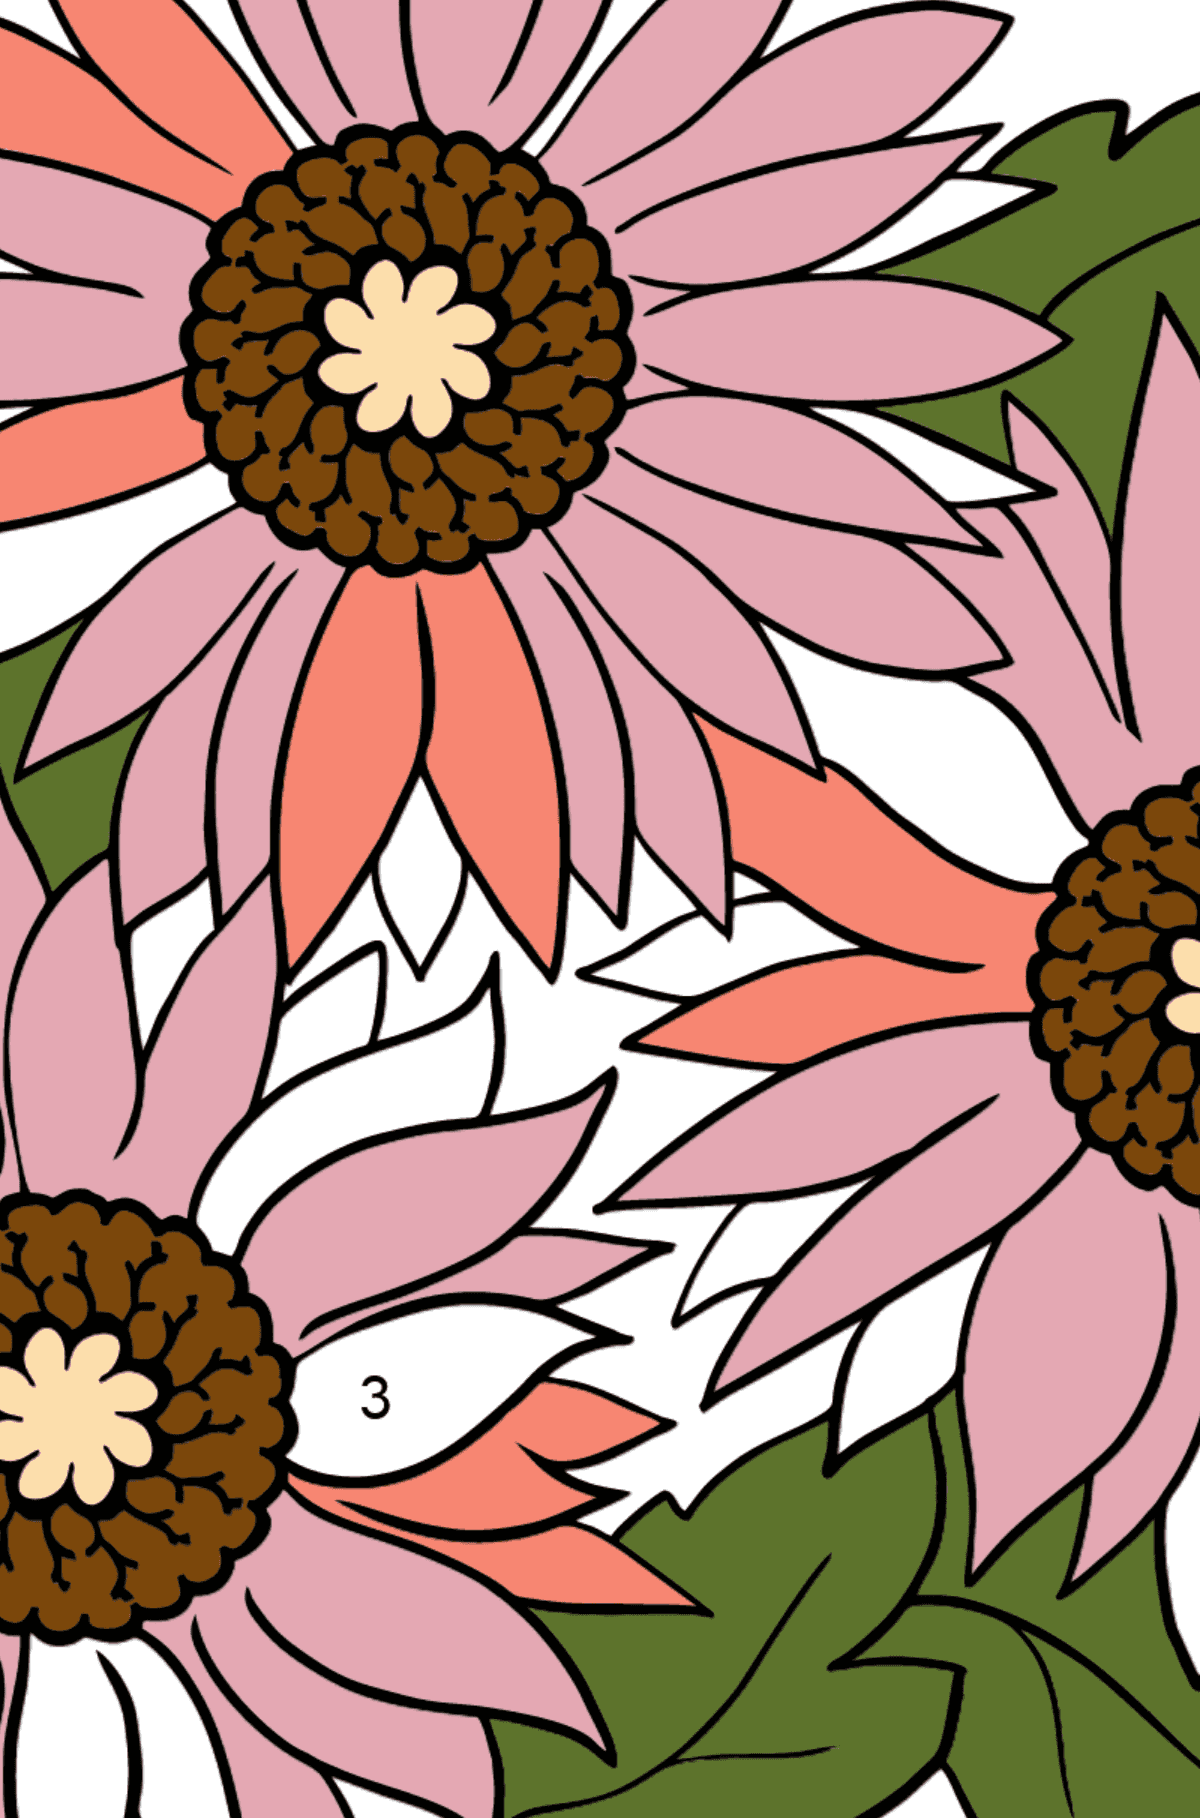 Coloring Flowers for the Youngest Children - Pink Gerbera - Coloring by Numbers for Kids